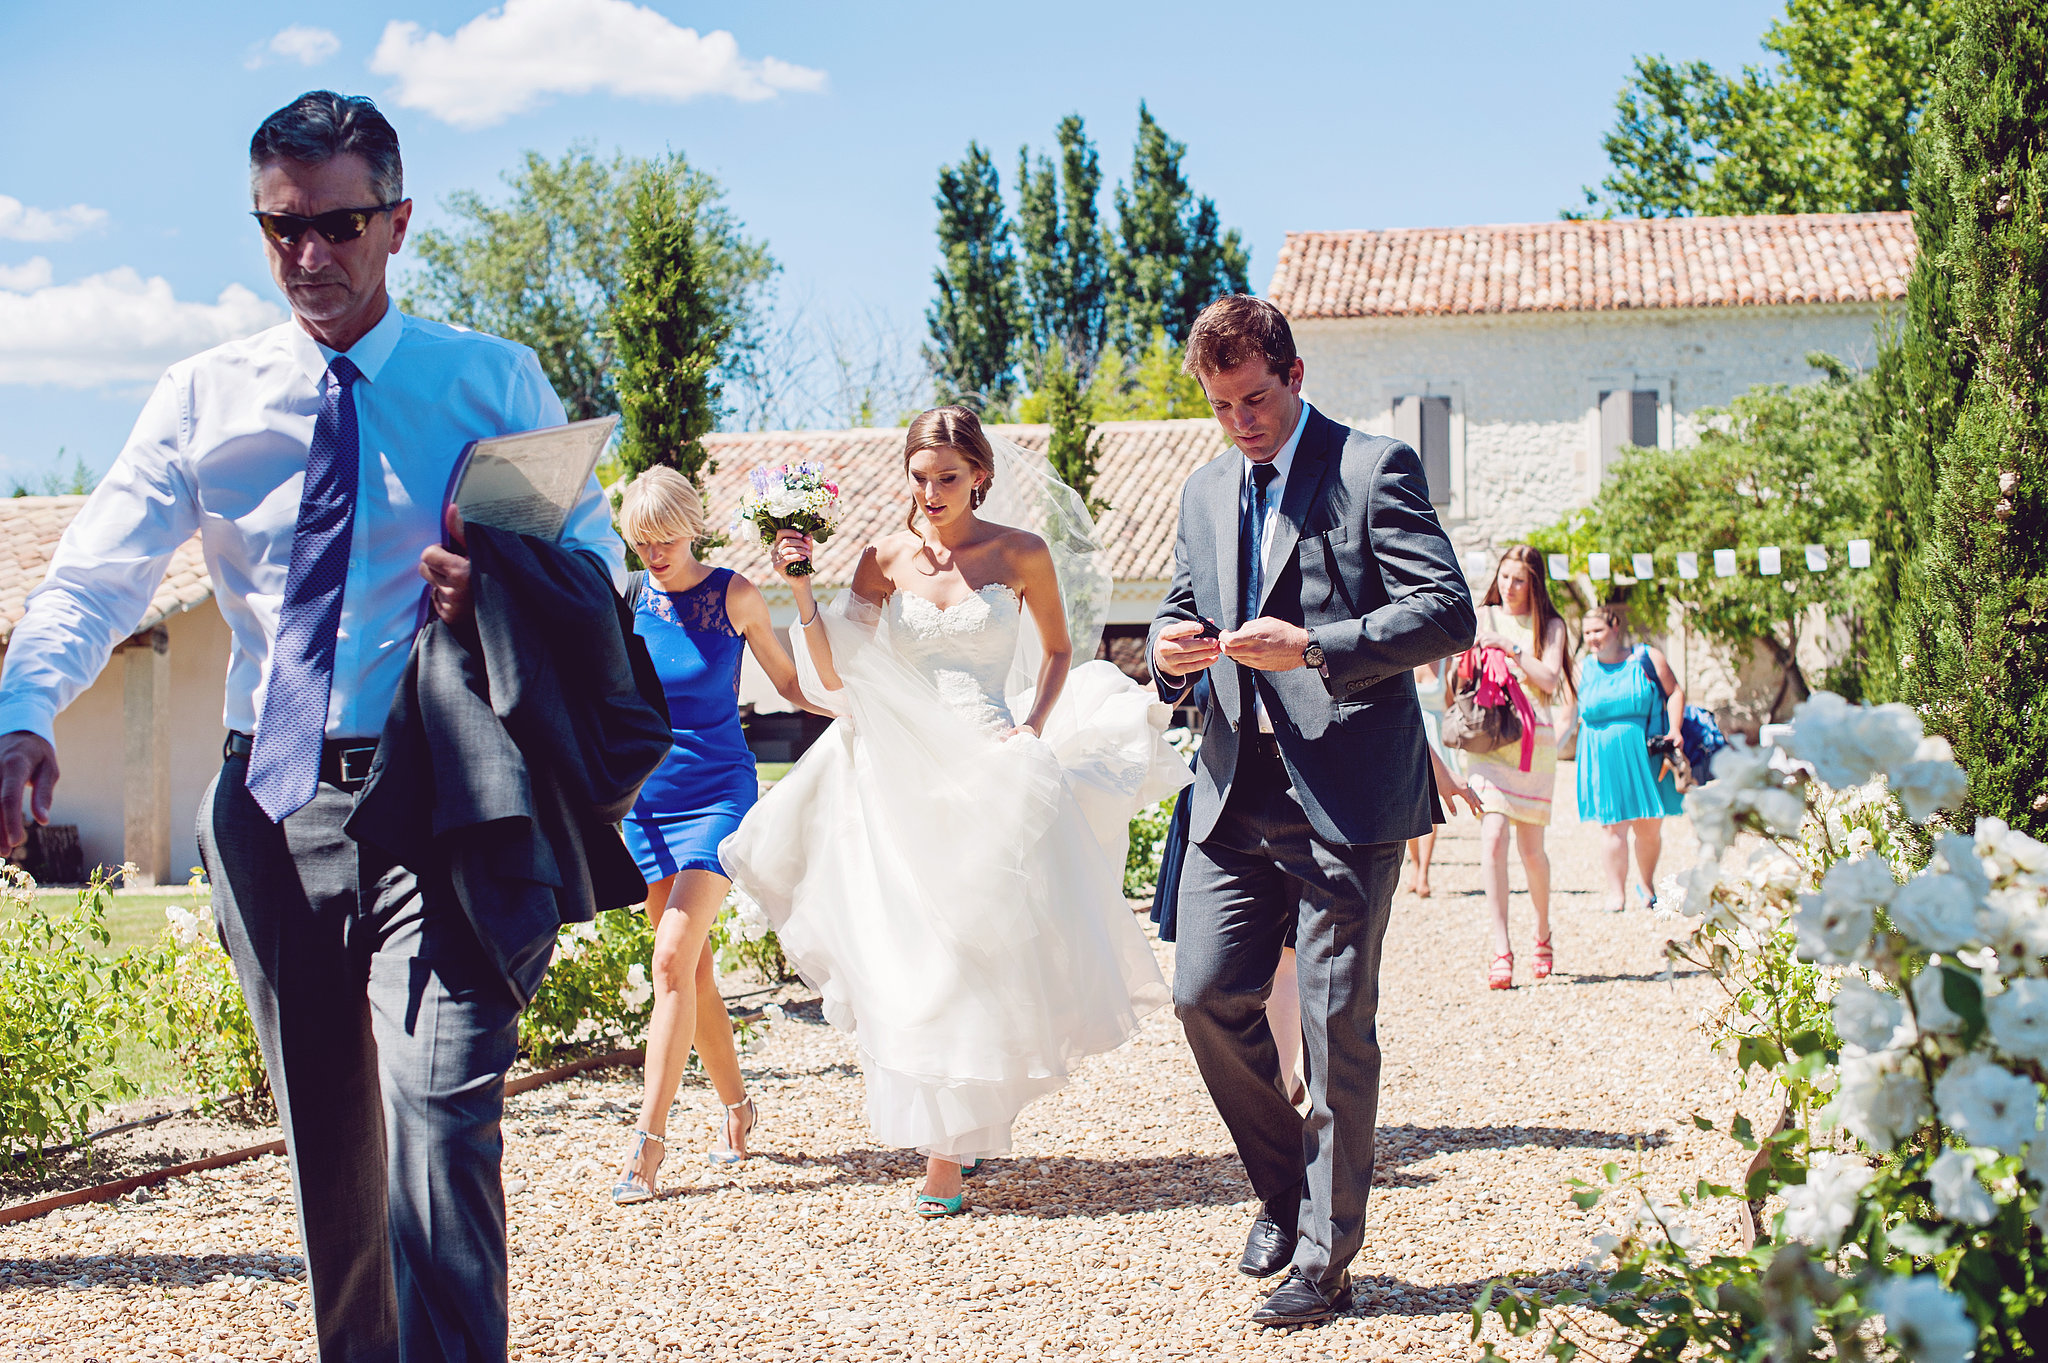 Running to Church For the Ceremony